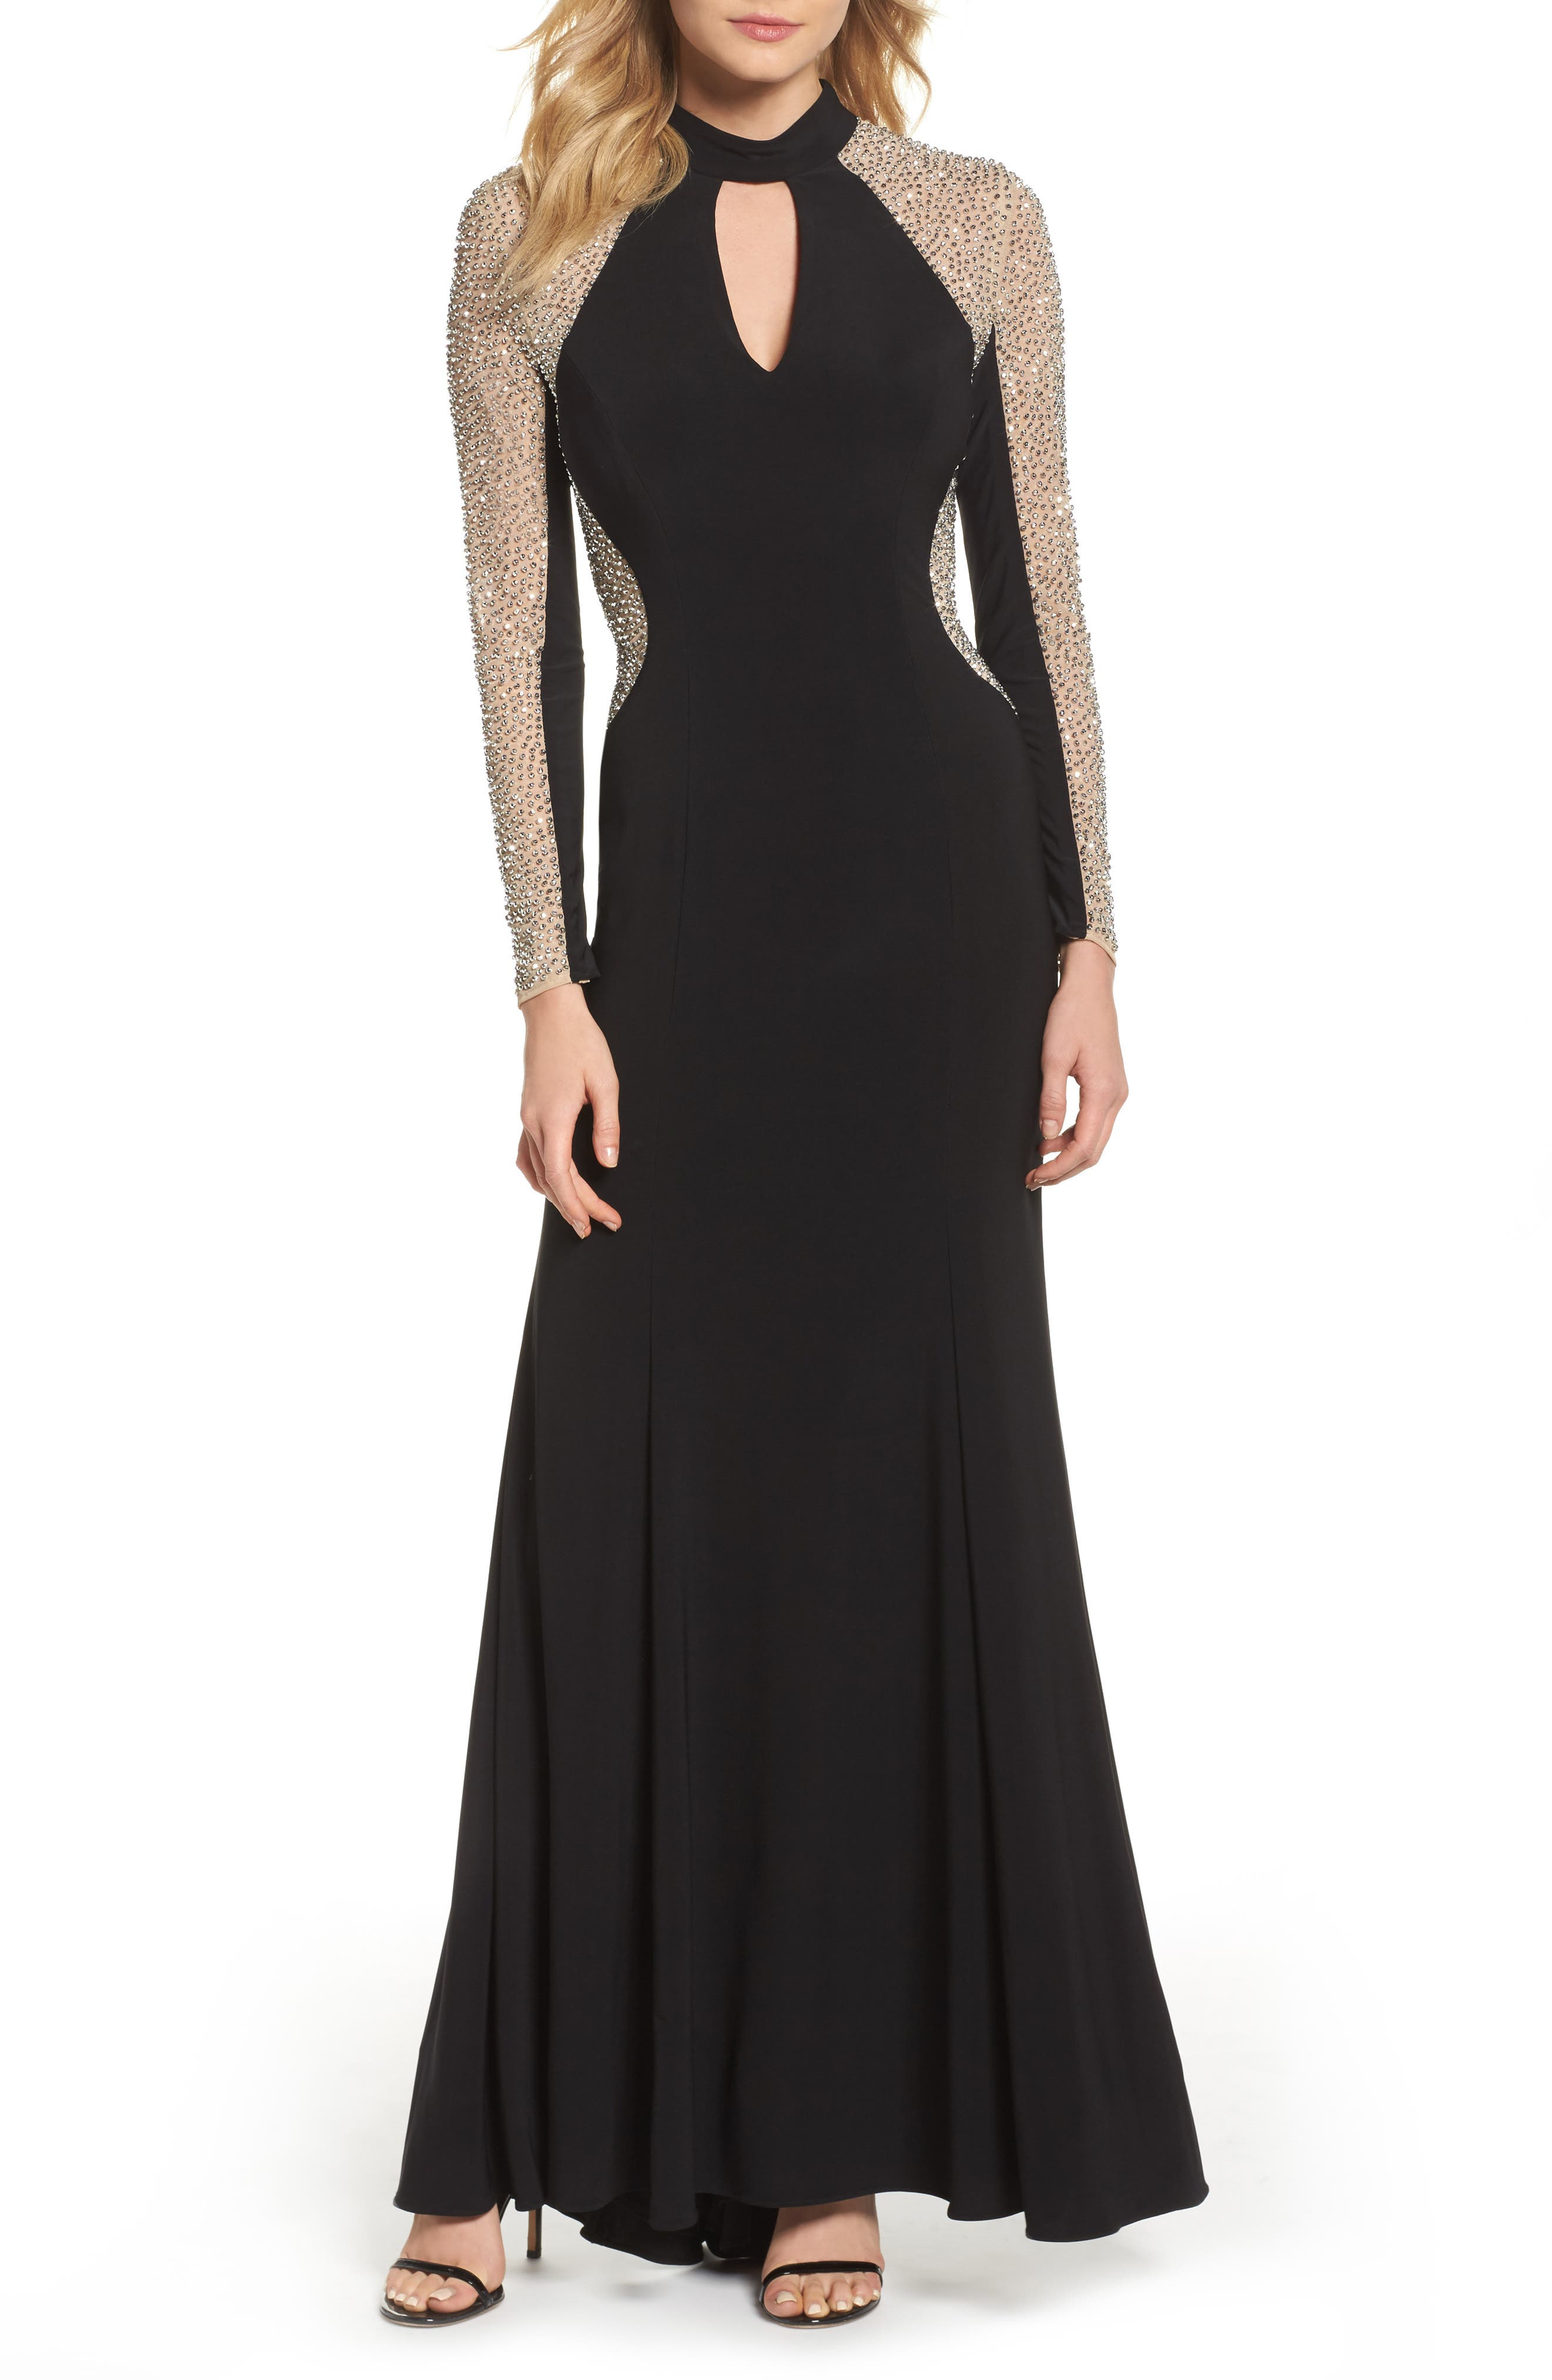 Beaded Choker Neck Gown,                             Main thumbnail 1, color,                             BLACK/ NUDE/ SILVER